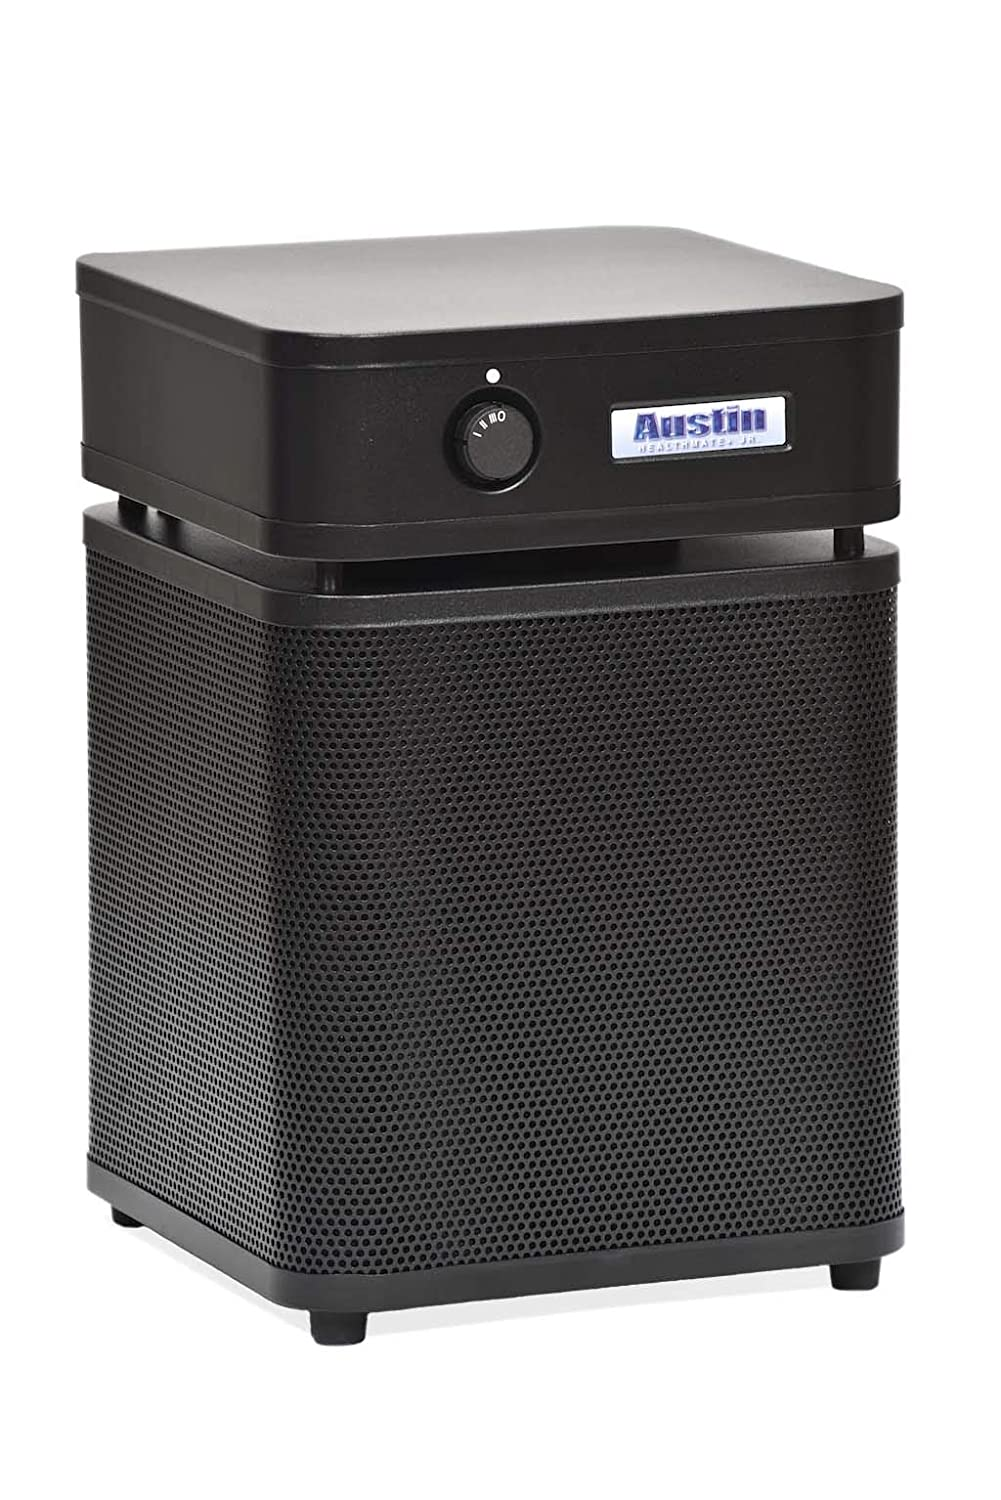 Austin Air A250B1 HealthMate Plus Junior Air Purifier, Black